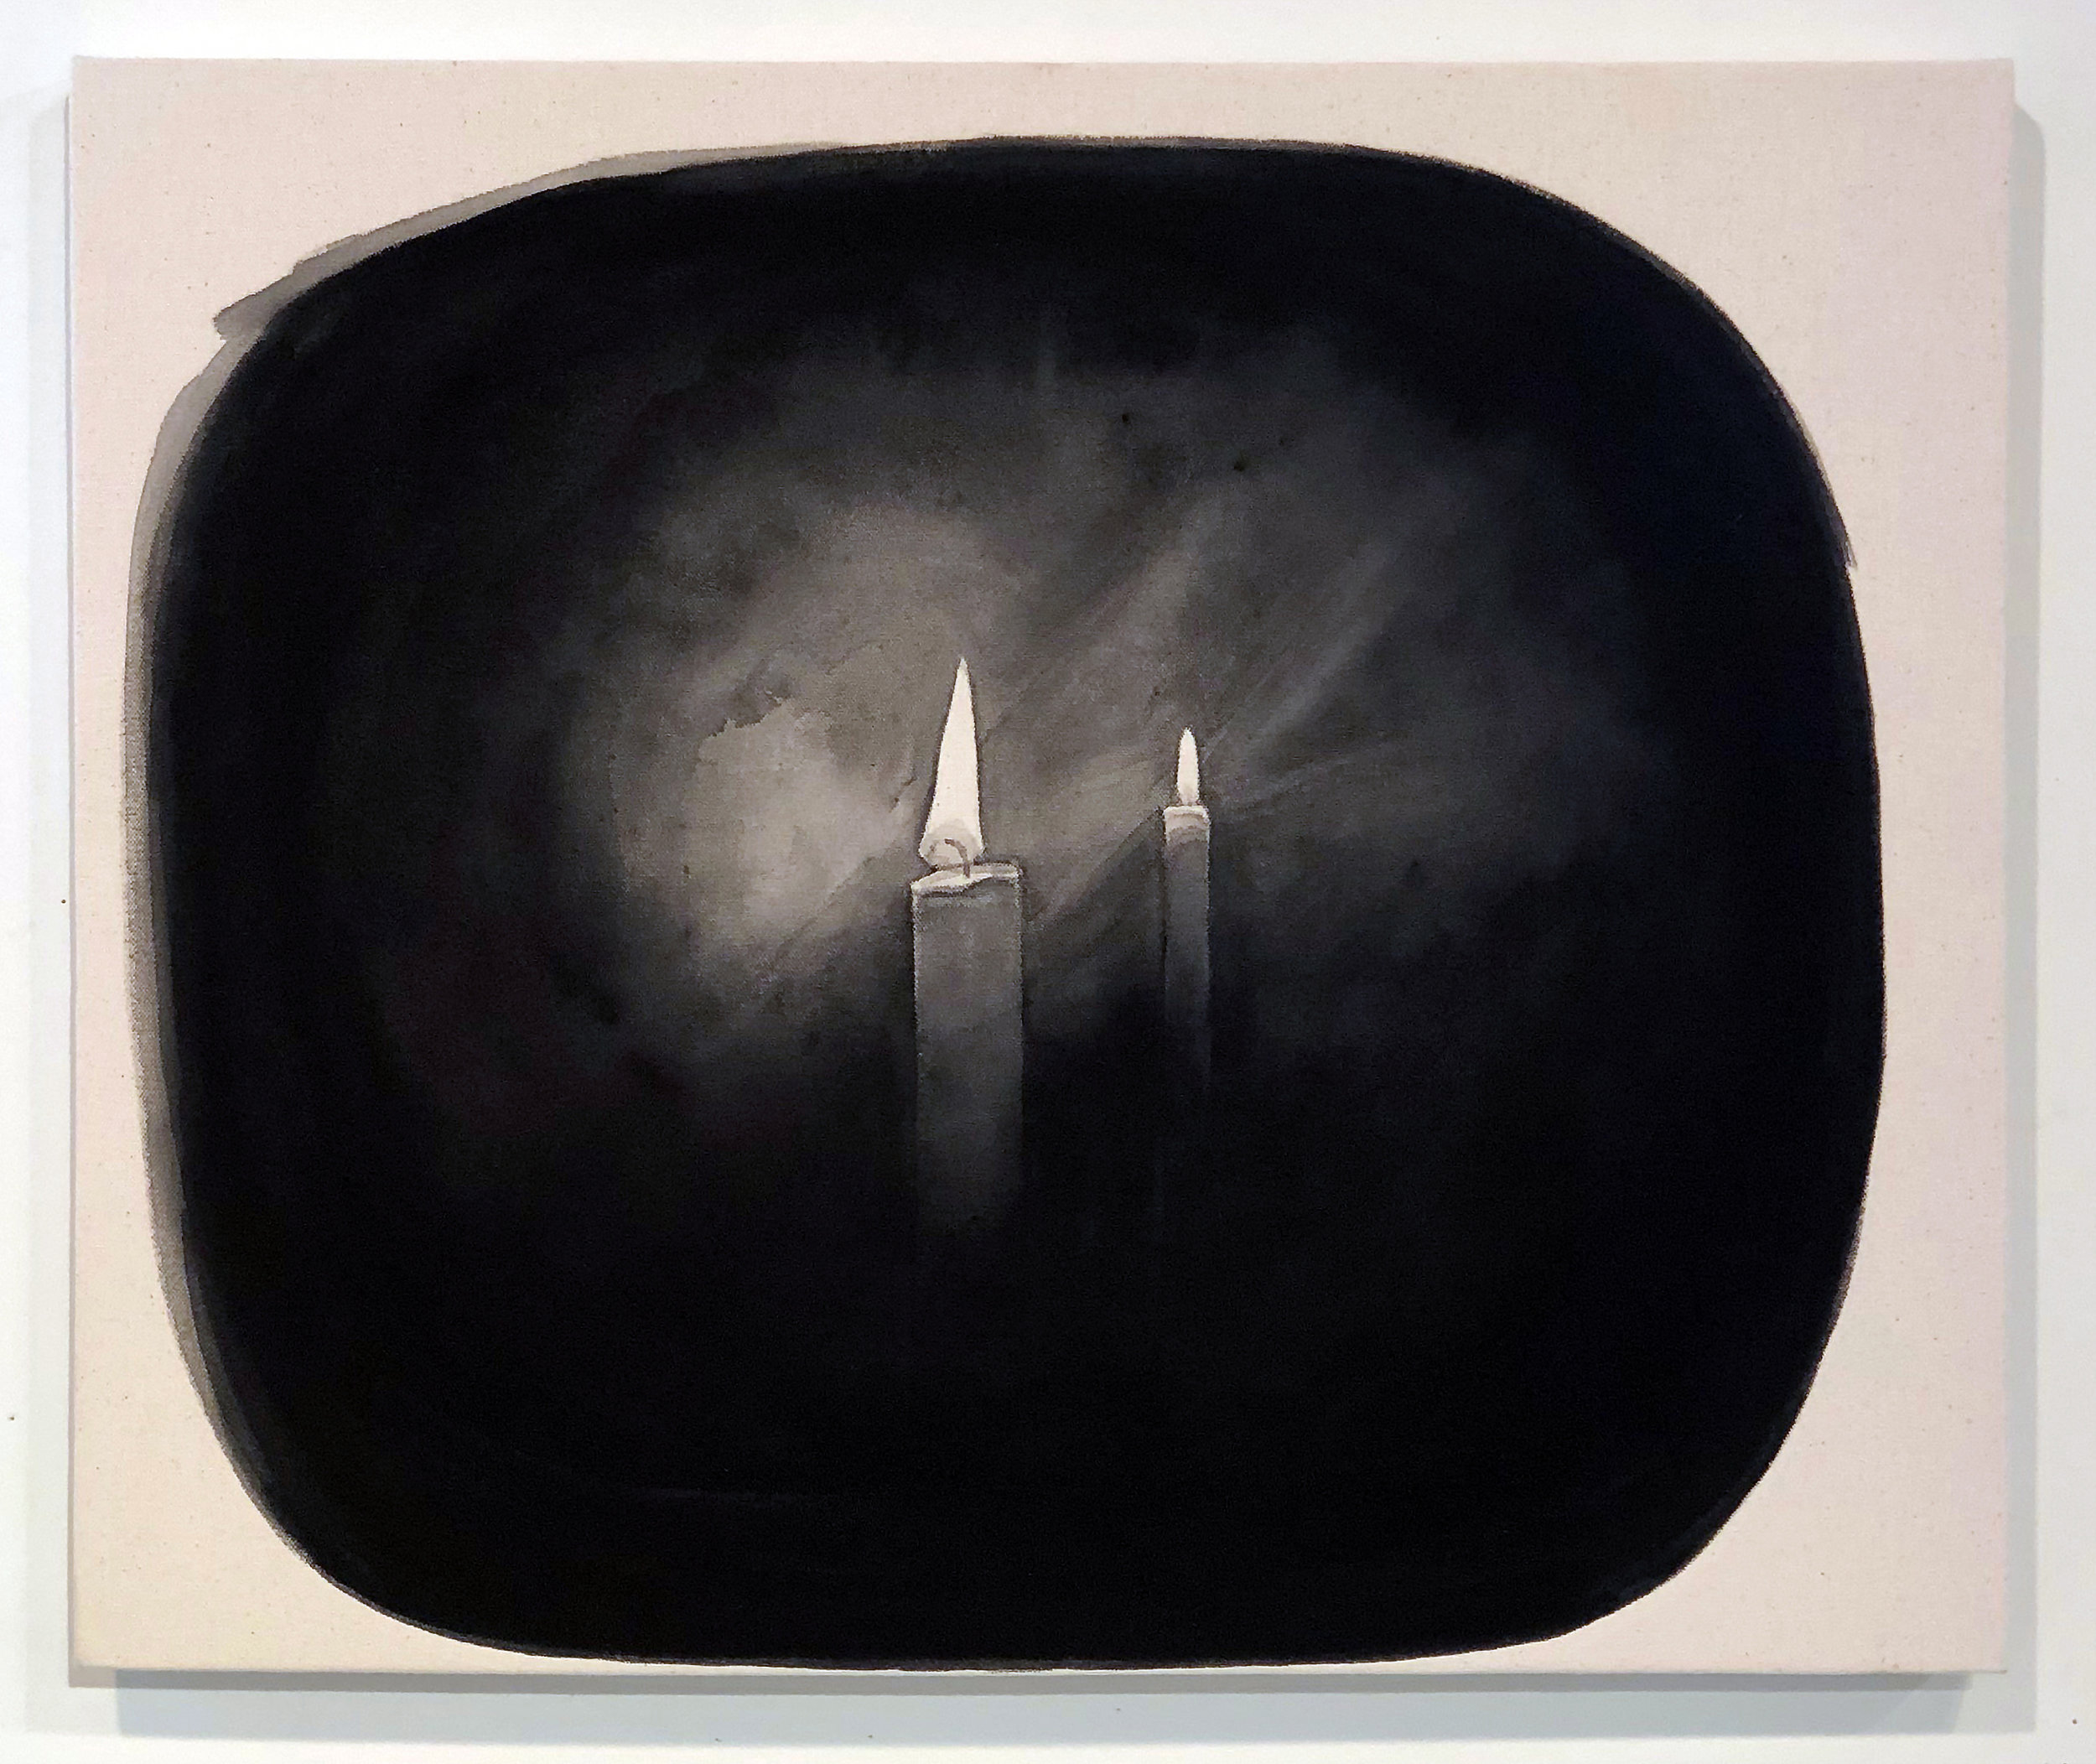 Candles (at Felix's, Greenpoint),  2019 Black gesso on canvas 23.5 x 19.5 inches (59.7cm x 49.5cm)